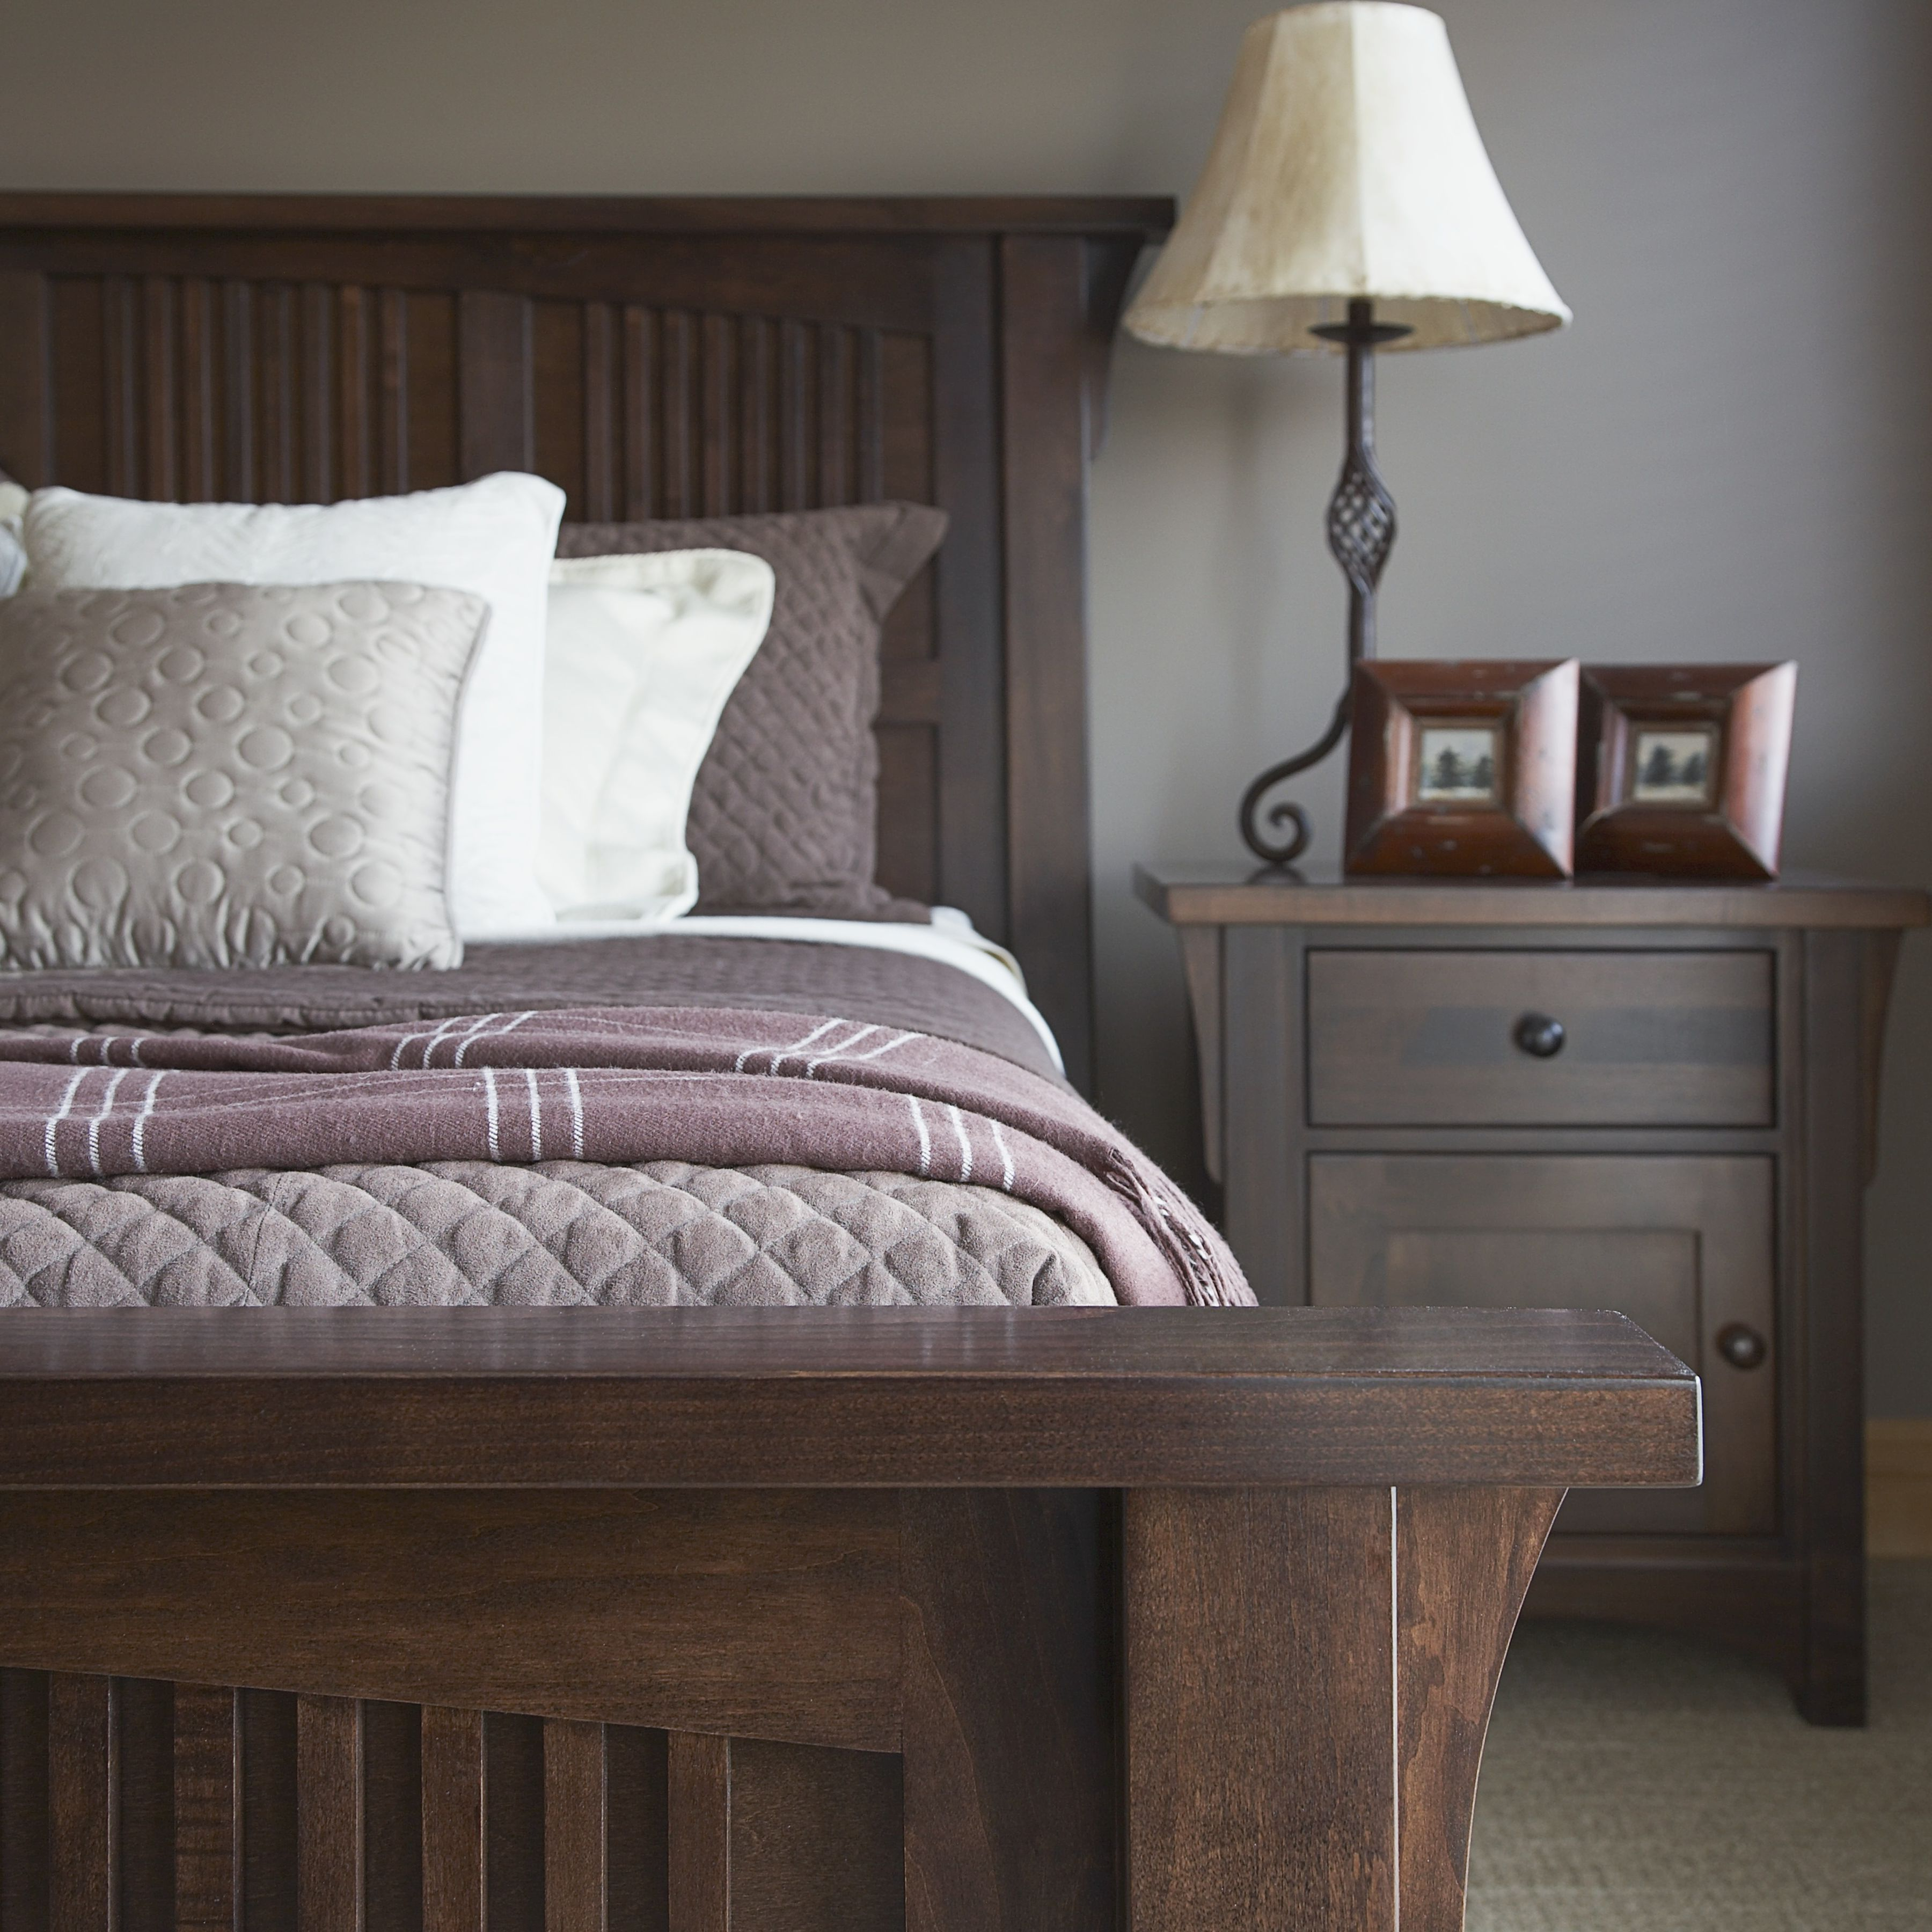 10 Best Rustic Paint Colors For The Home